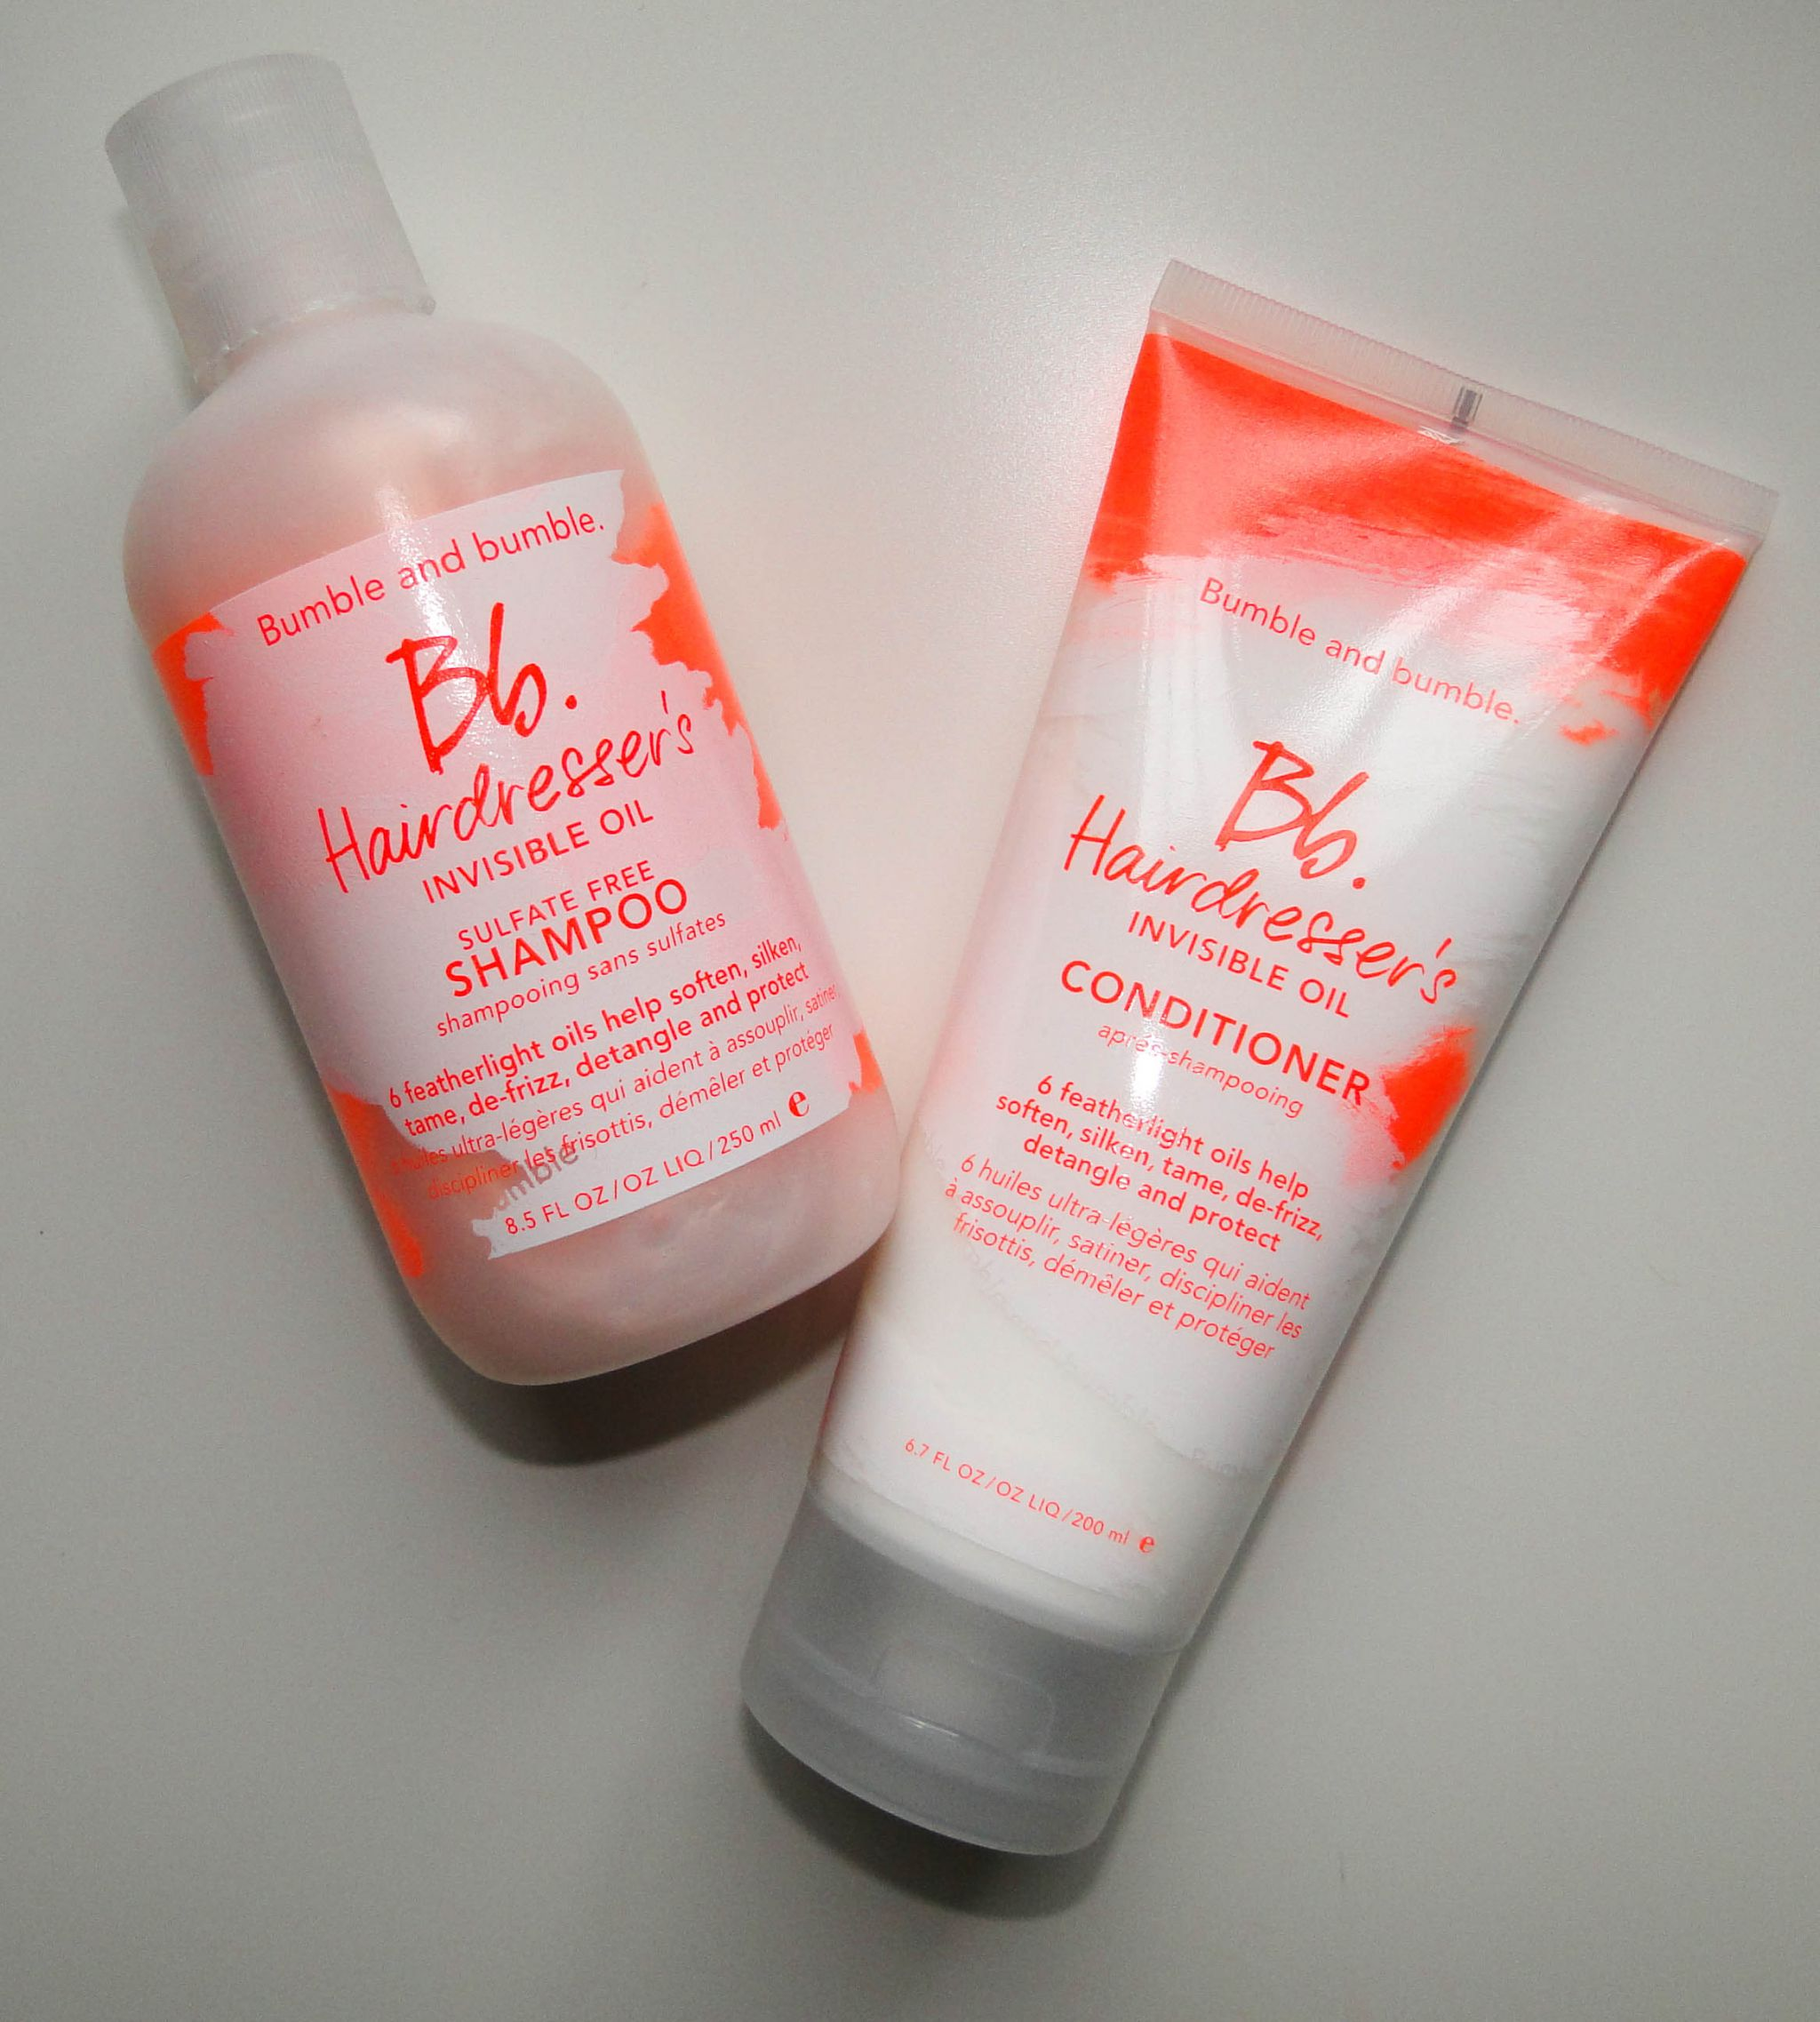 Bumble & Bumble Hairdresser's Oil Shampoo, Conditioner and Primer